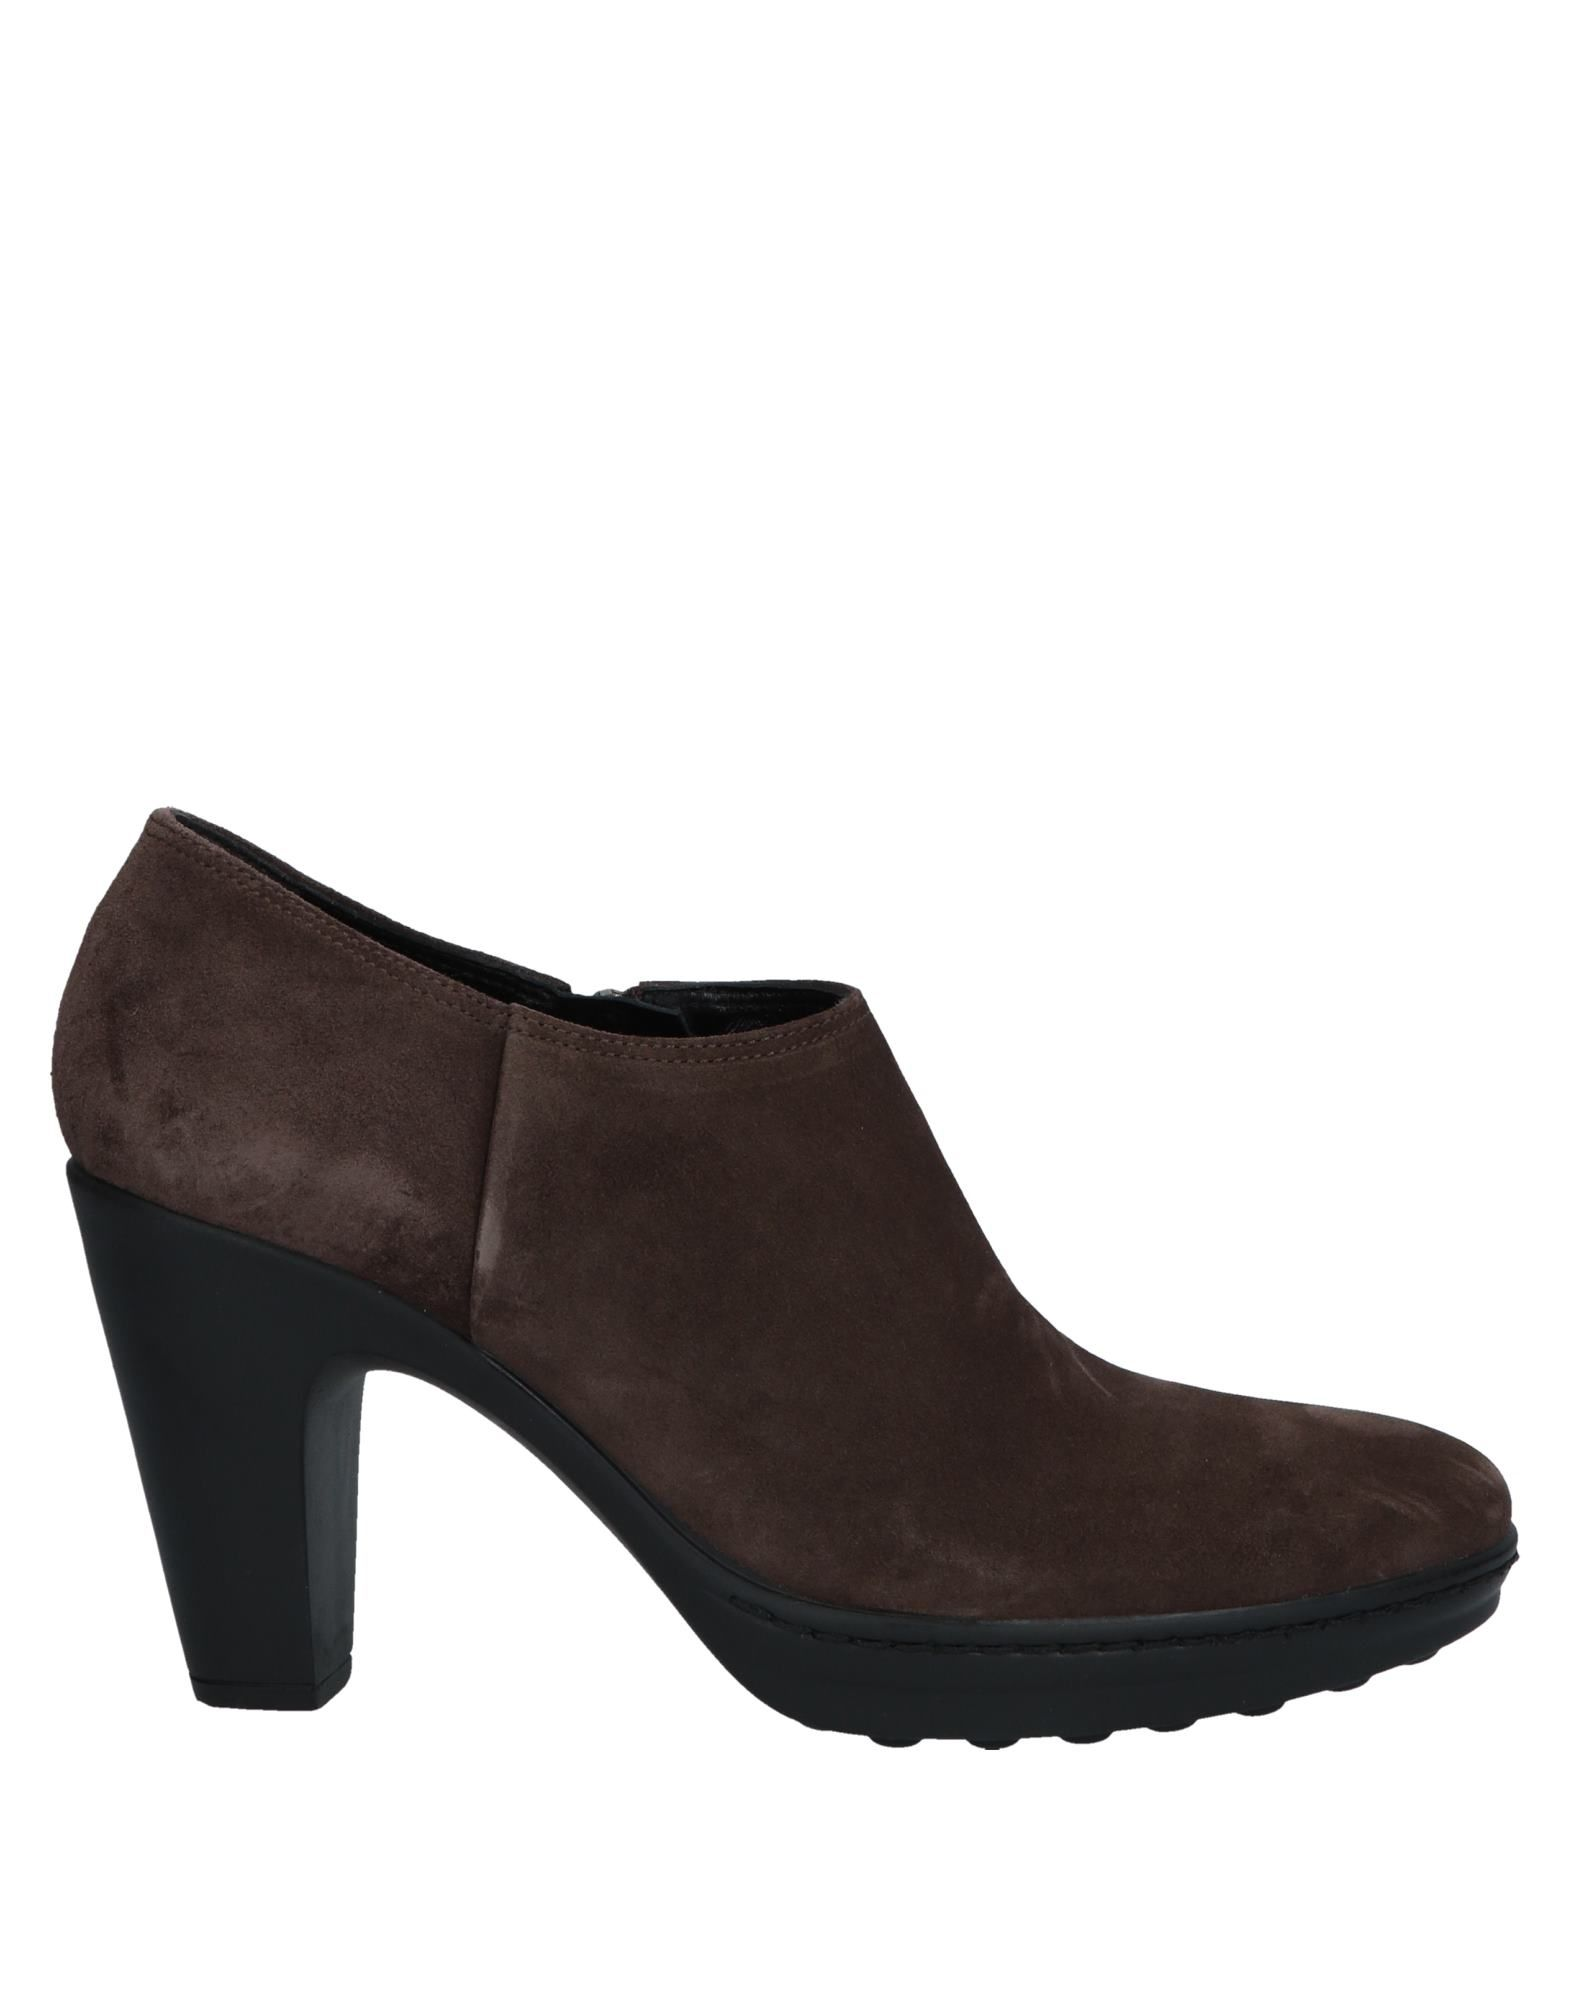 Pons Quintana Ankle Boot - Women Pons Quintana  Ankle Boots online on  Quintana United Kingdom - 11556024NF 894ddf